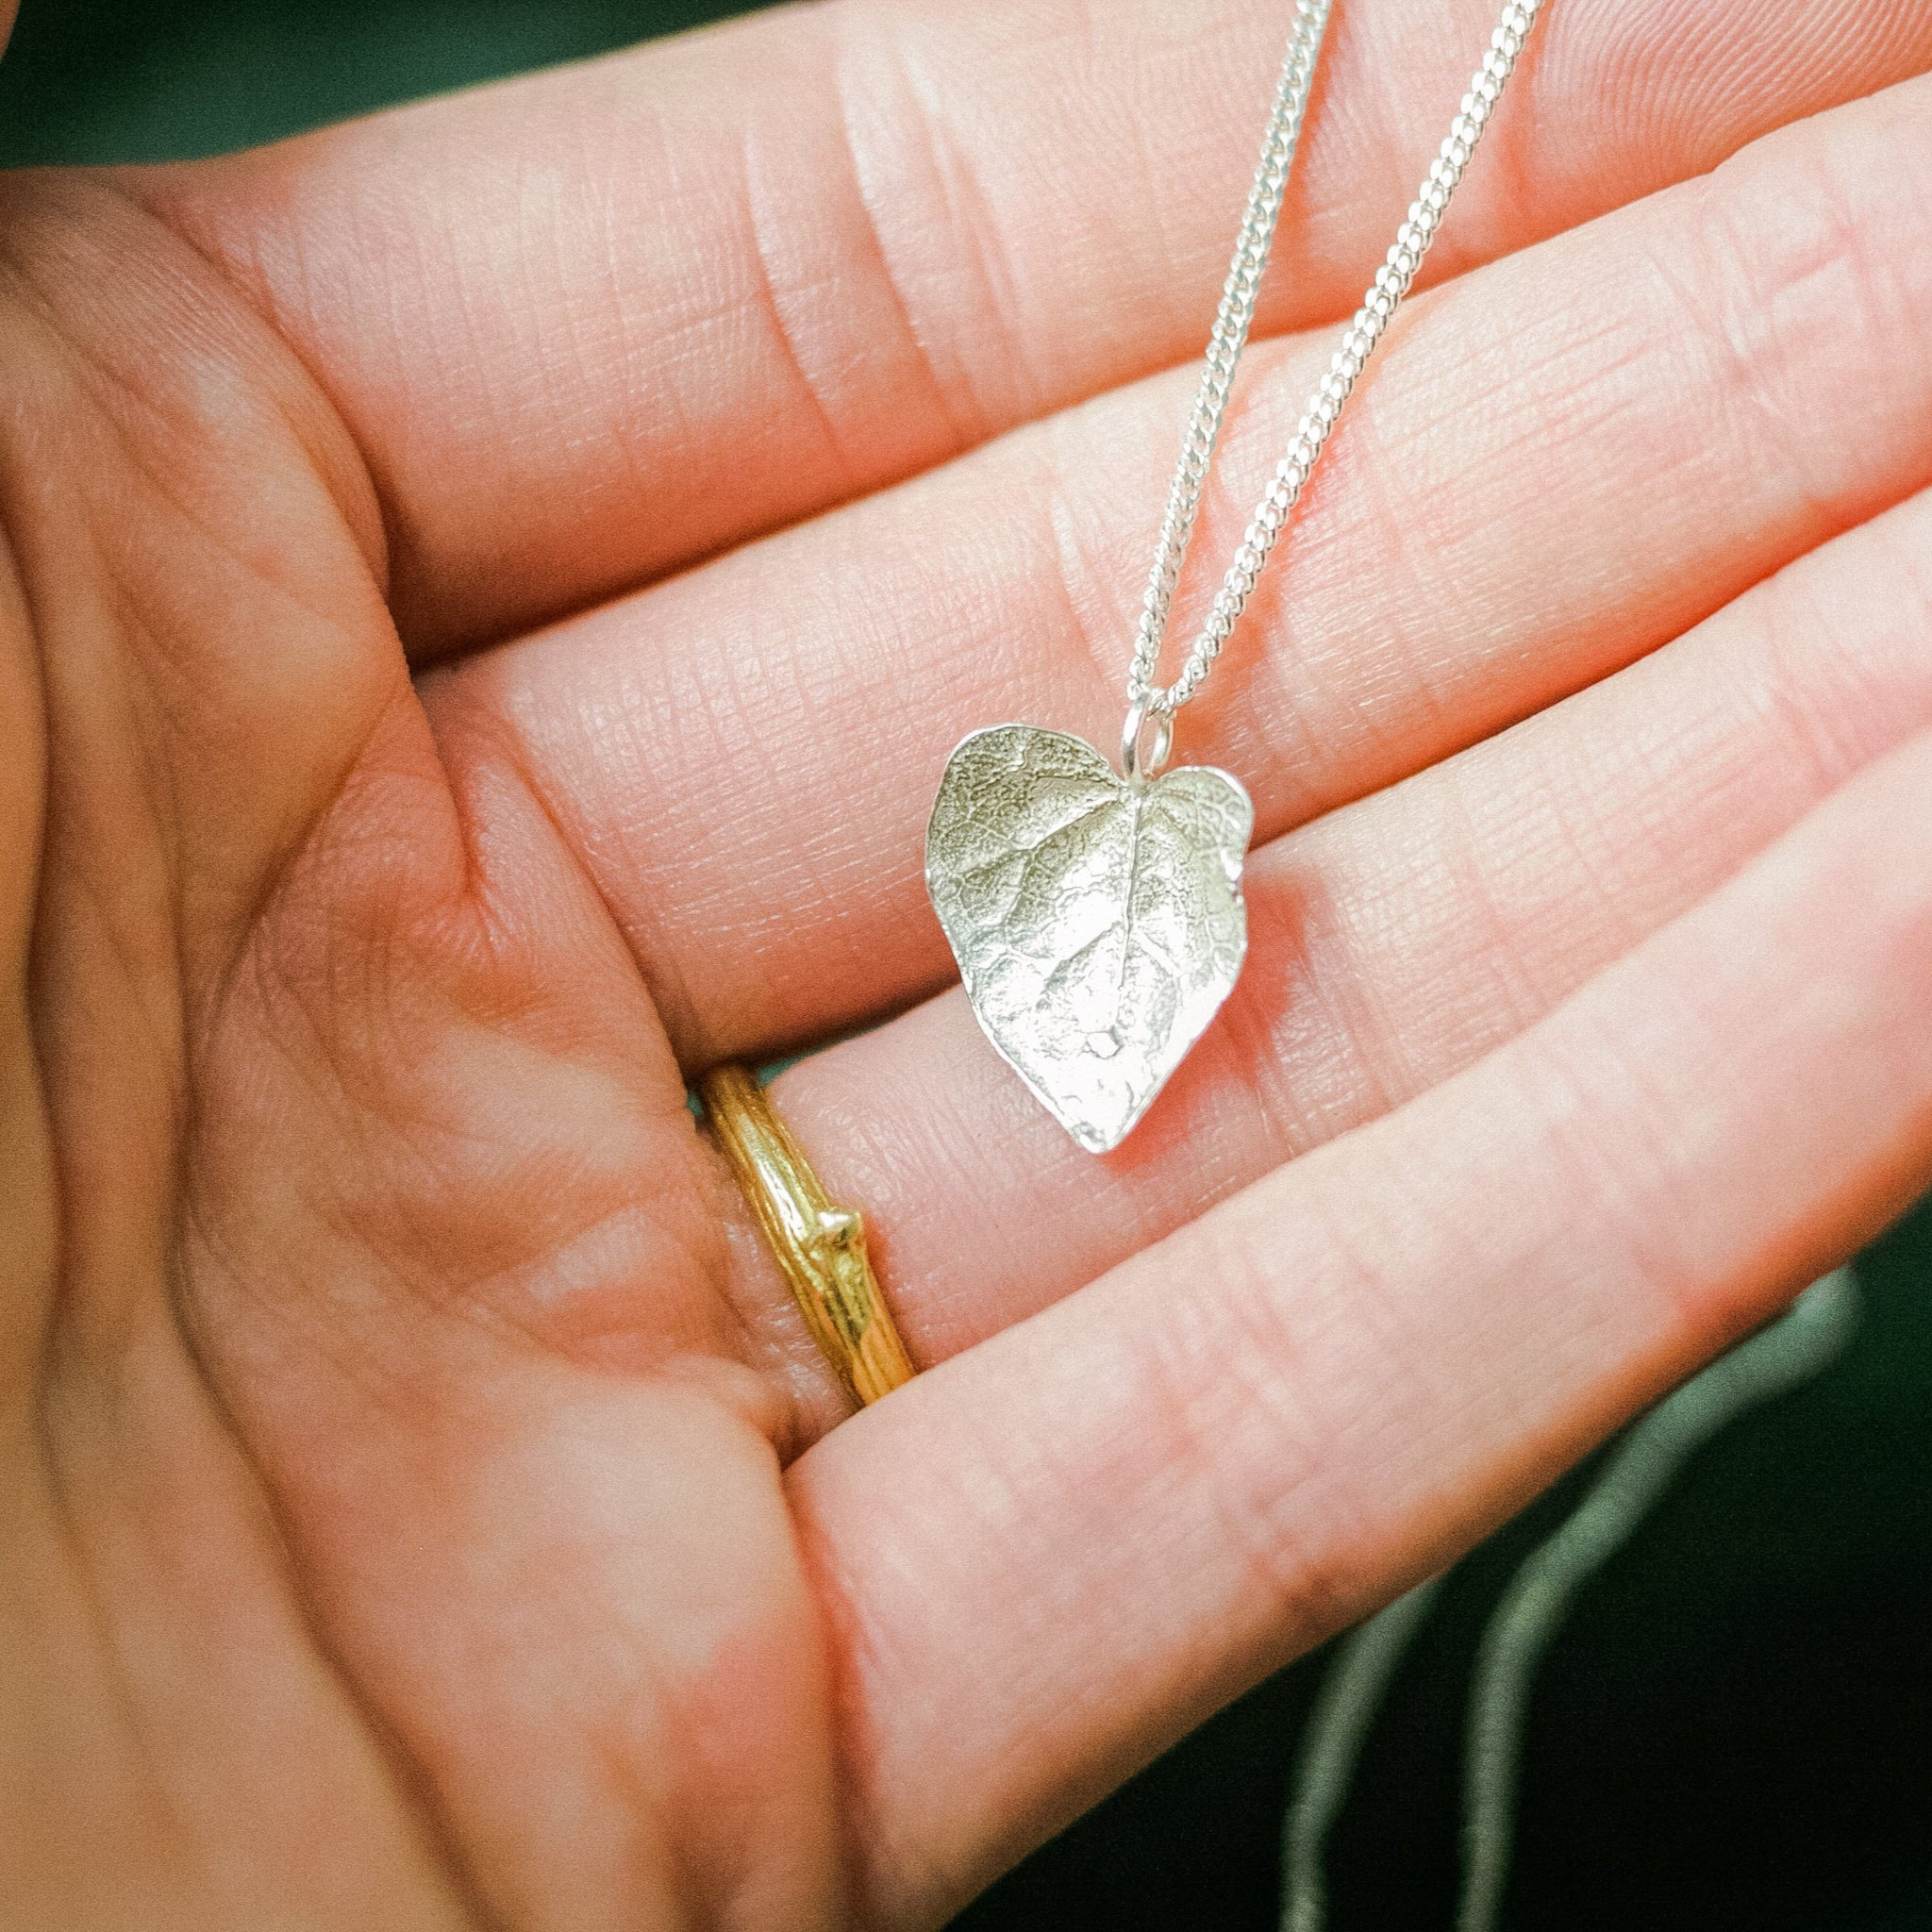 ivy leaf silver necklace held in hand